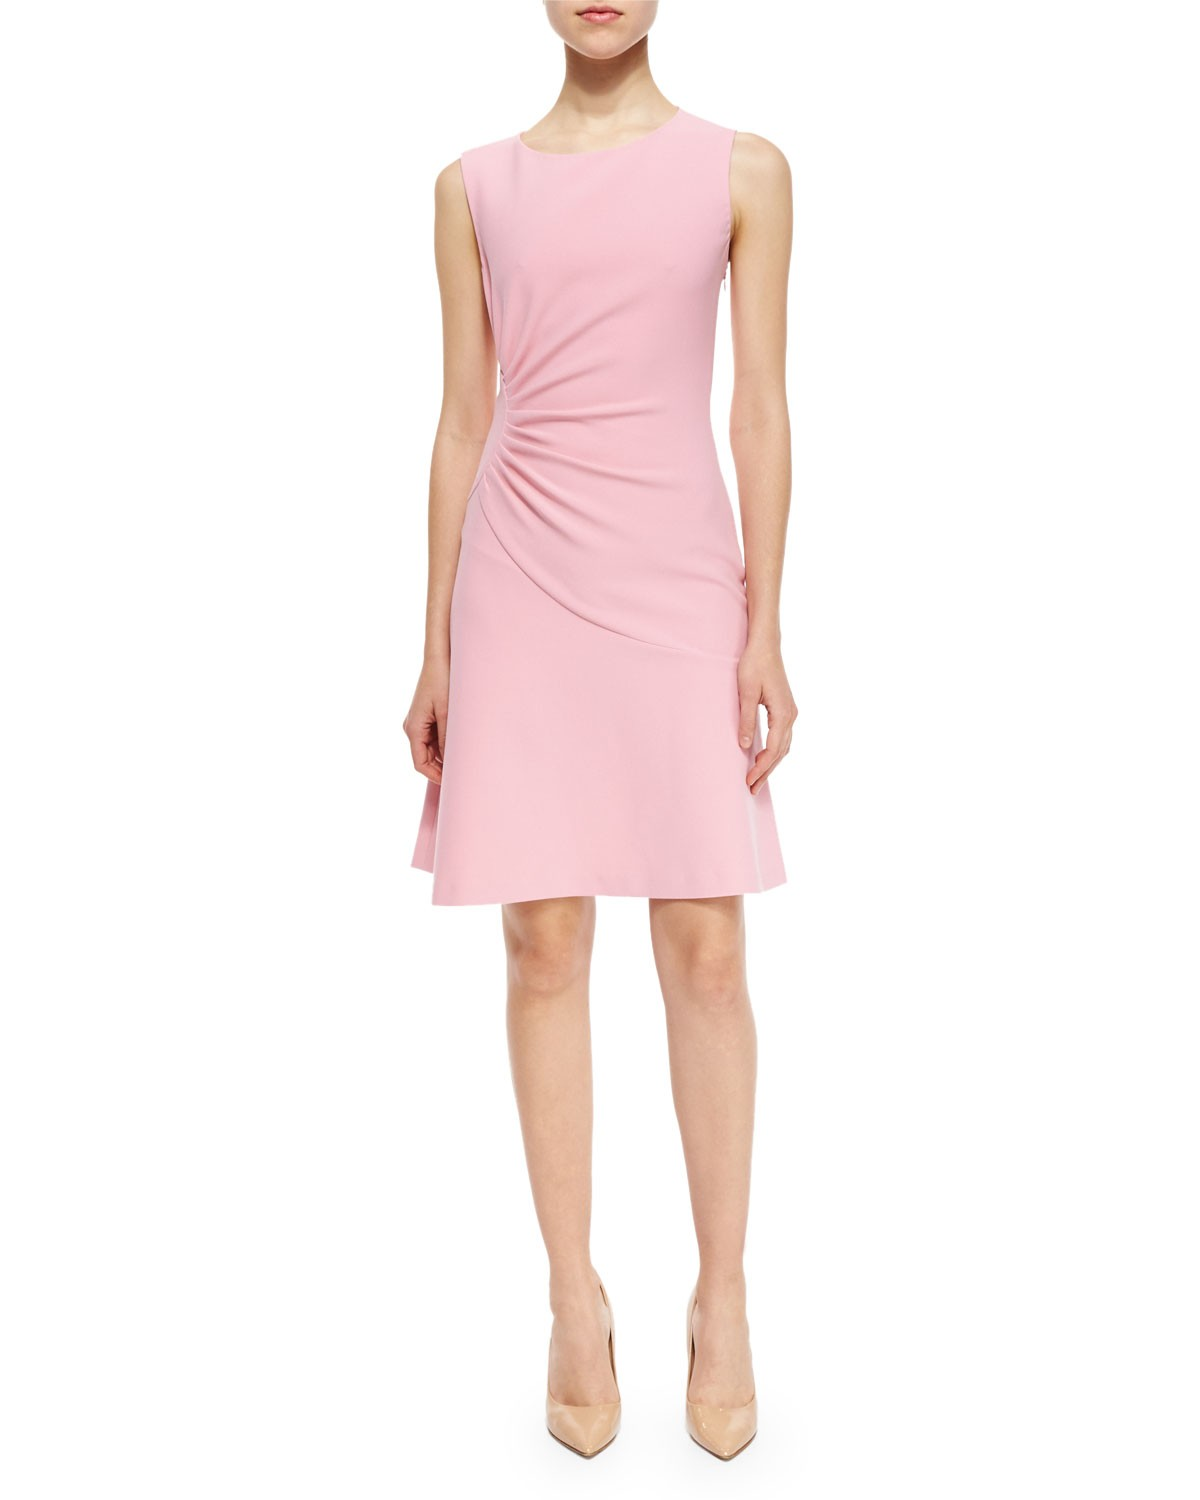 Dayna Ruched Fit-and-Flare Dress, Pink Ice, Size: 0, PINK - Diane von Furstenberg